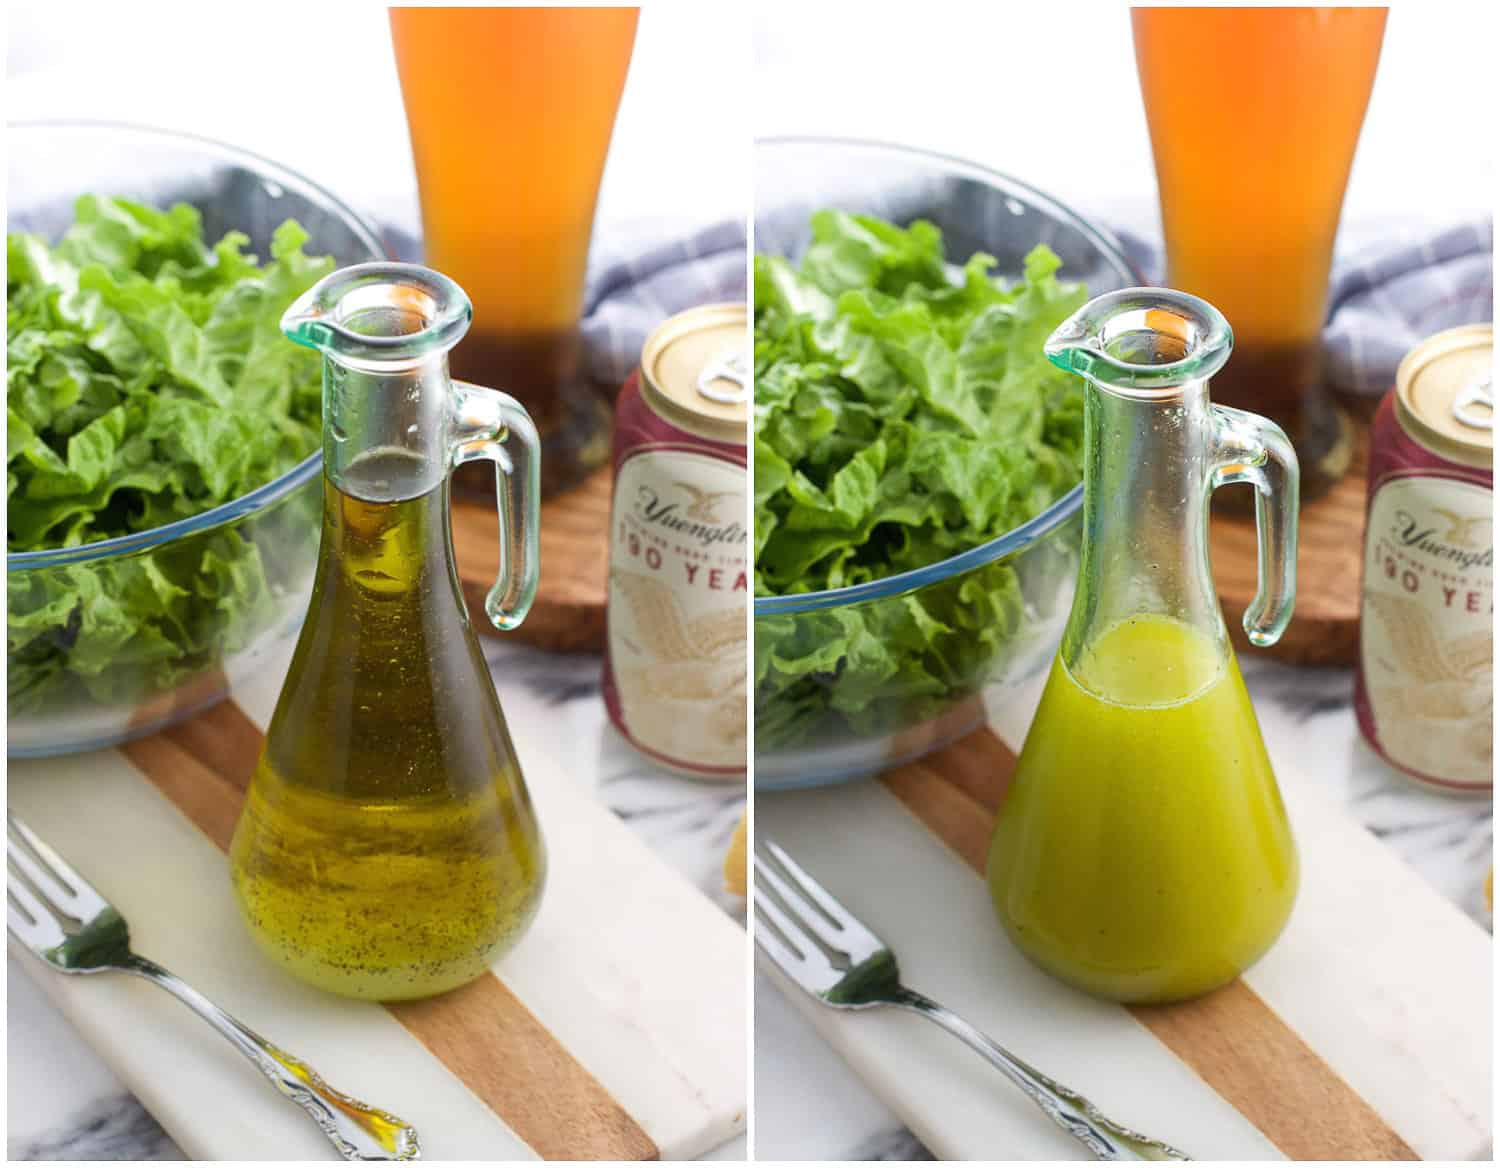 A side-by-side picture of vinaigrette ingredients in a clear dispenser before being shaken (left) and after being shaken (right)